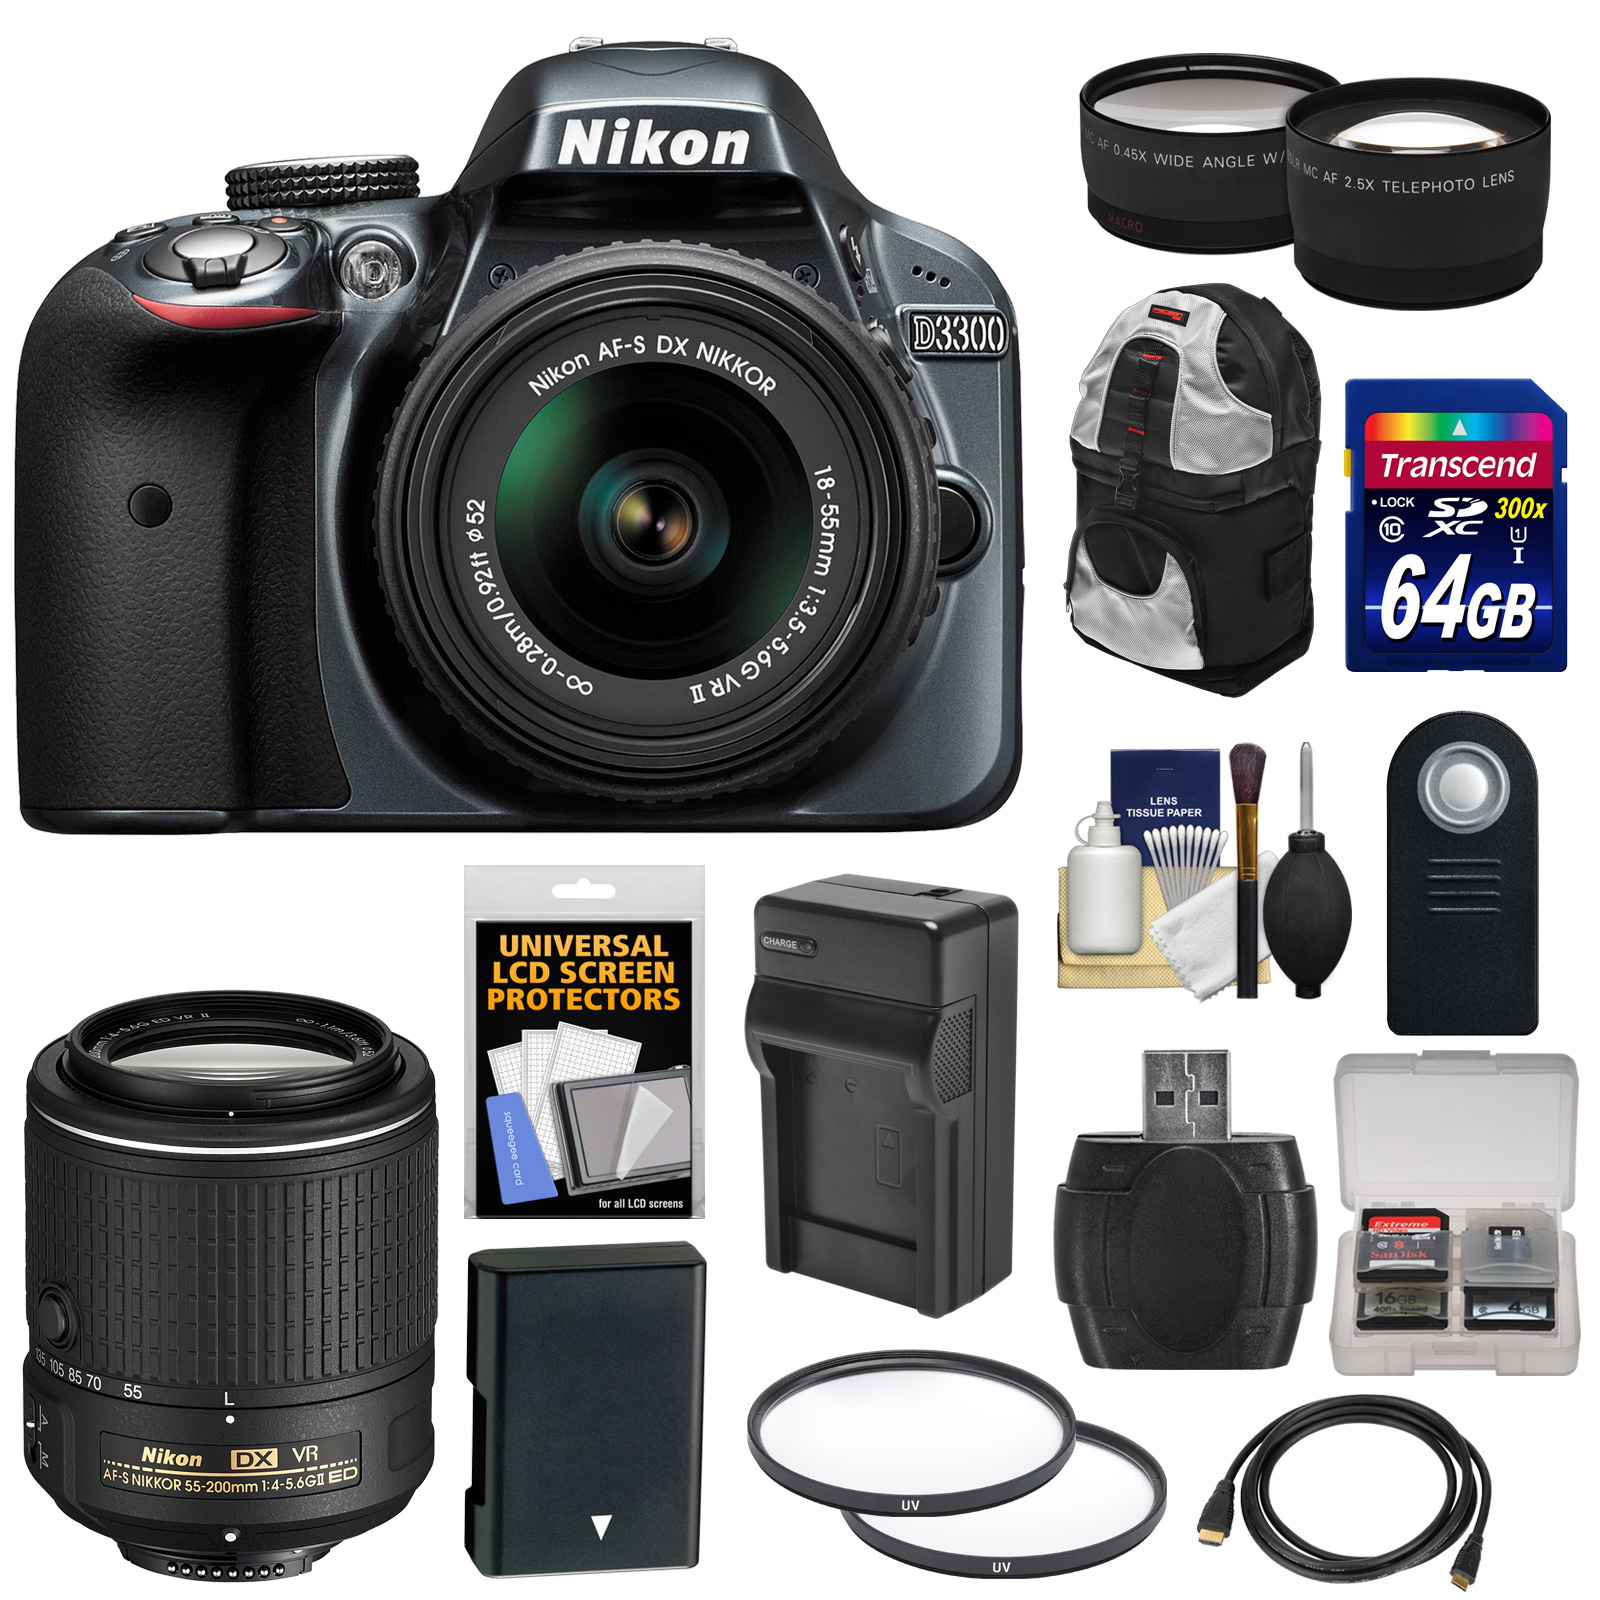 Nikon D3300 Digital SLR Camera & 18-55mm G VR DX II (Grey) with 55-200mm VR II Lens + 64GB Card + Backpack + Battery & Charger + Tele/Wide Lens Kit